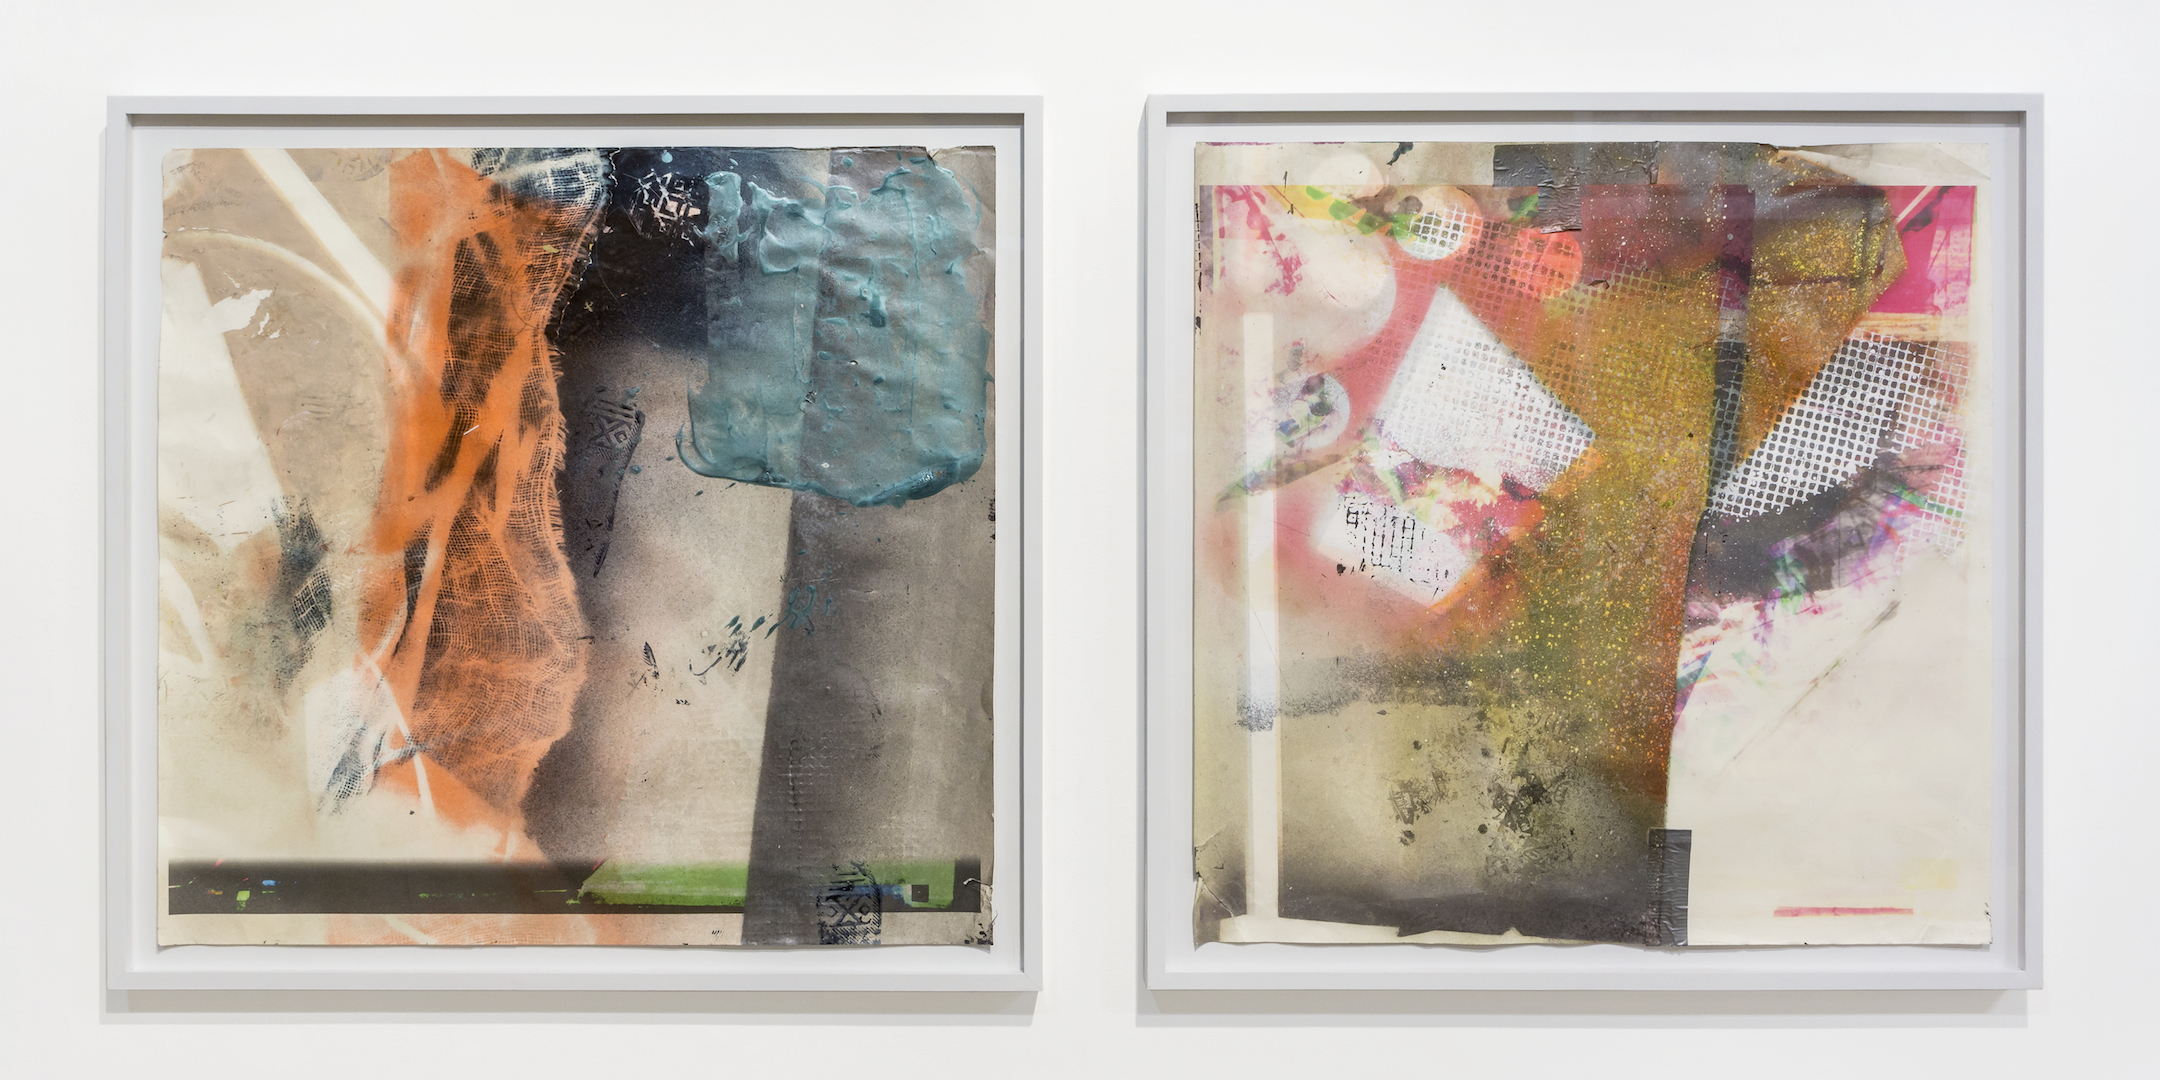 IAIN MUIRHEAD   1617 and 1615  , 2015-2016. Airborne pigment, acrylic binder, ultraviolet ink, smooth bristol paper,duct tape, nylon monofilament. Paper: 36 x 36 inches each. Frame: 40 x 40 inches each.